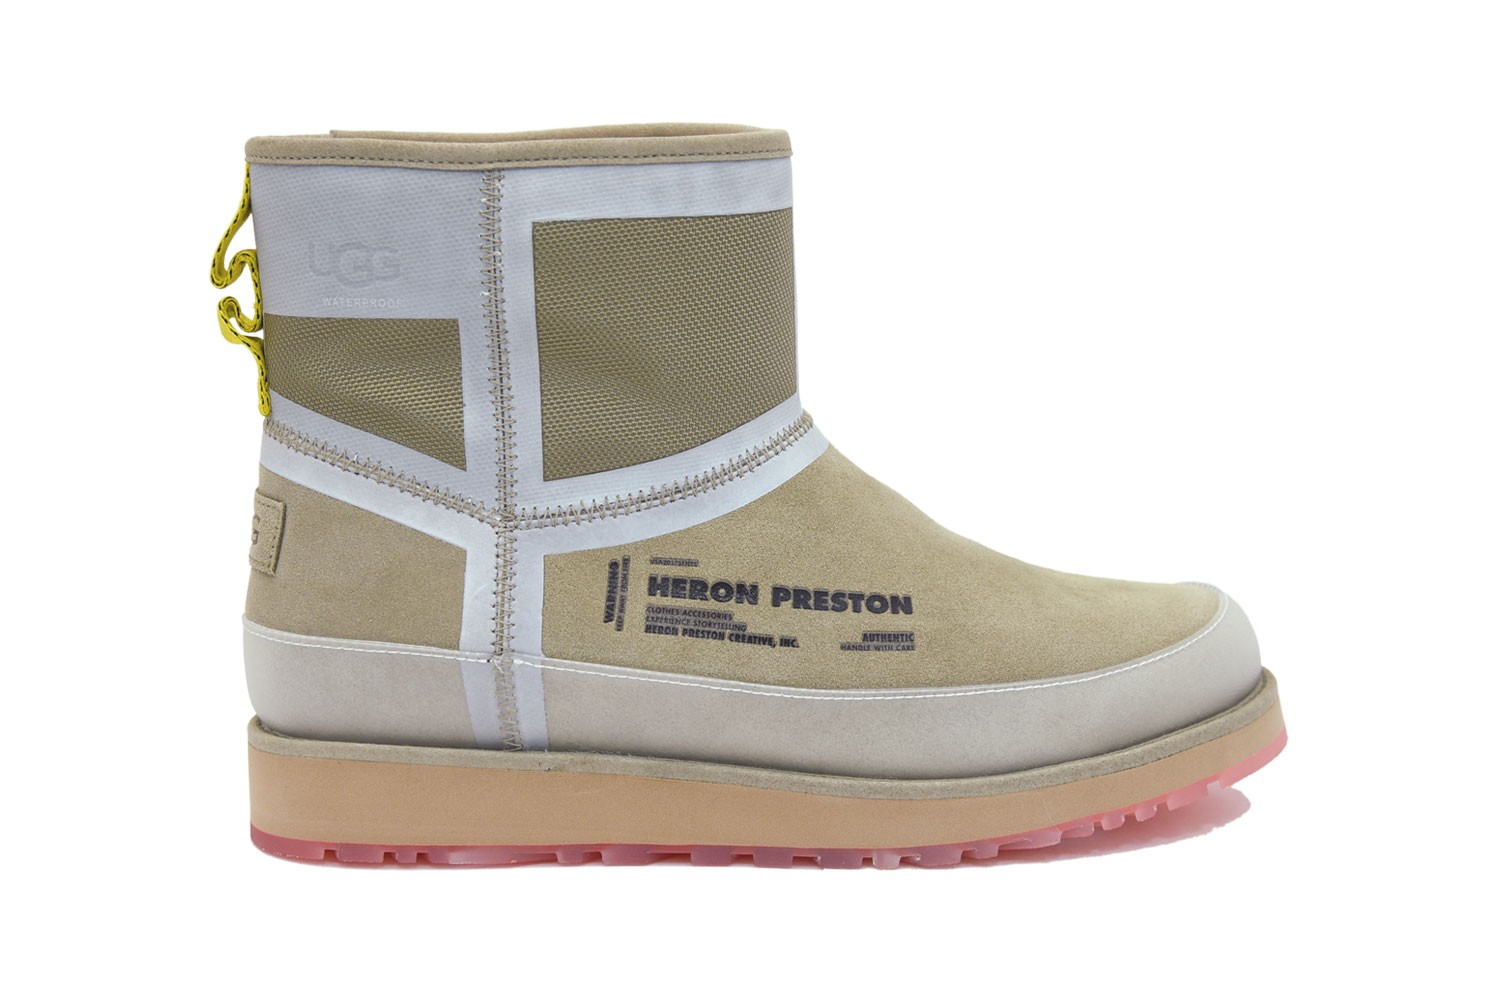 ugg heron preston boots collaboration classic mini tasman slippers